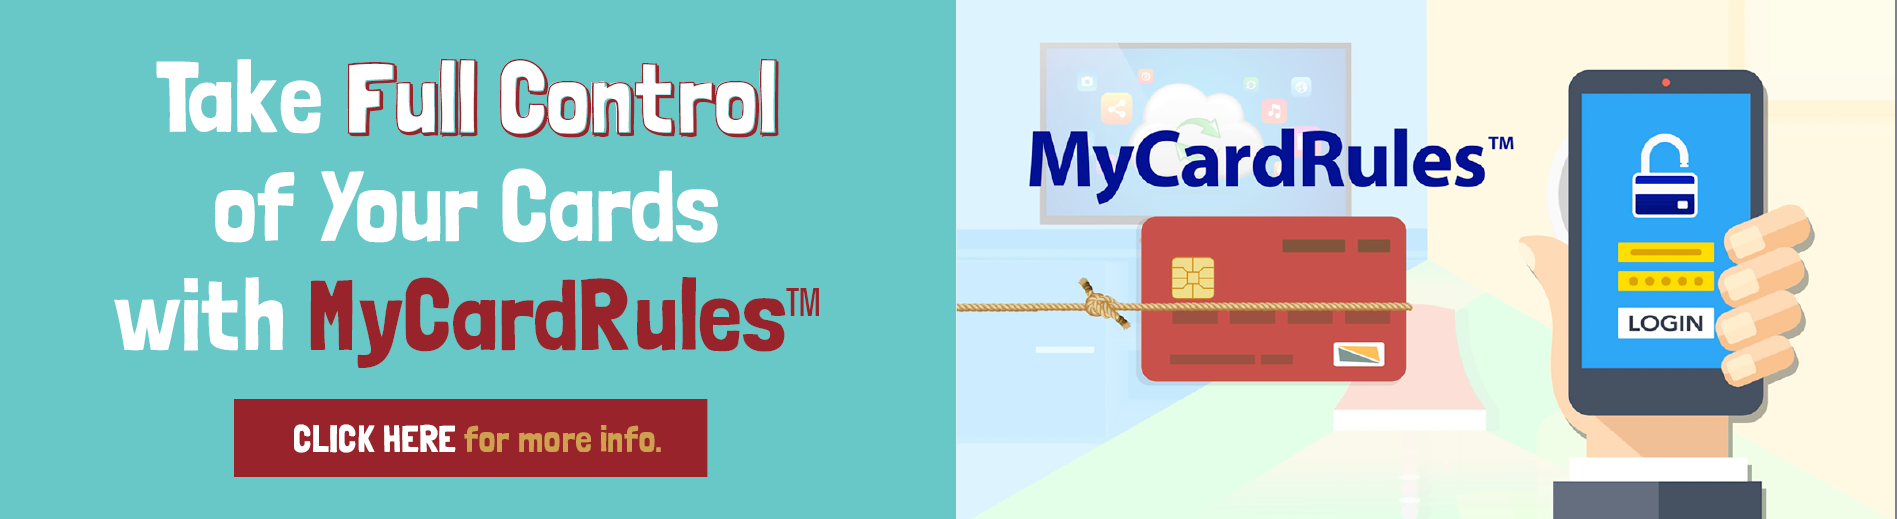 Take full control of your cards with MyCardRules.  Click for more information.